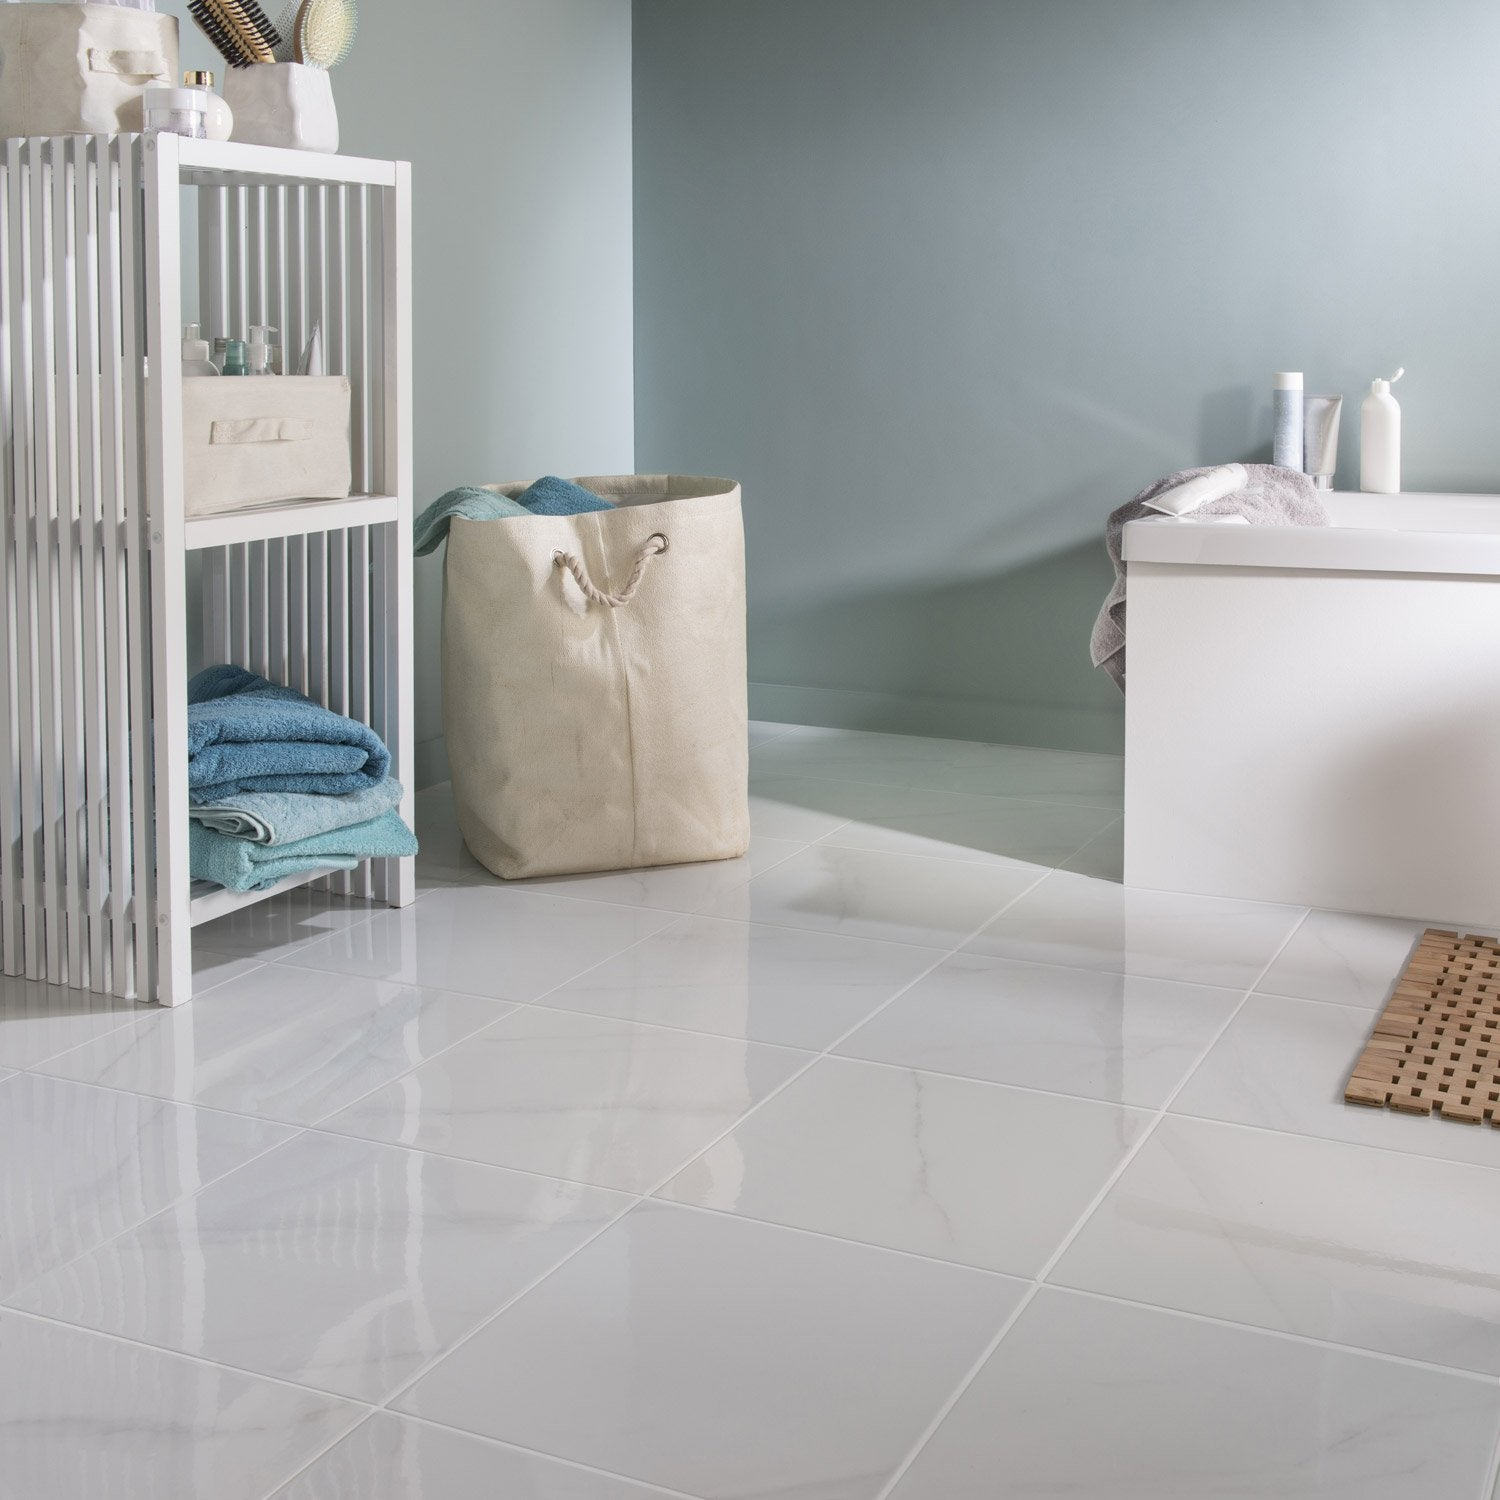 Carrelage marbre salon for Carrelage blanc sol salle de bain